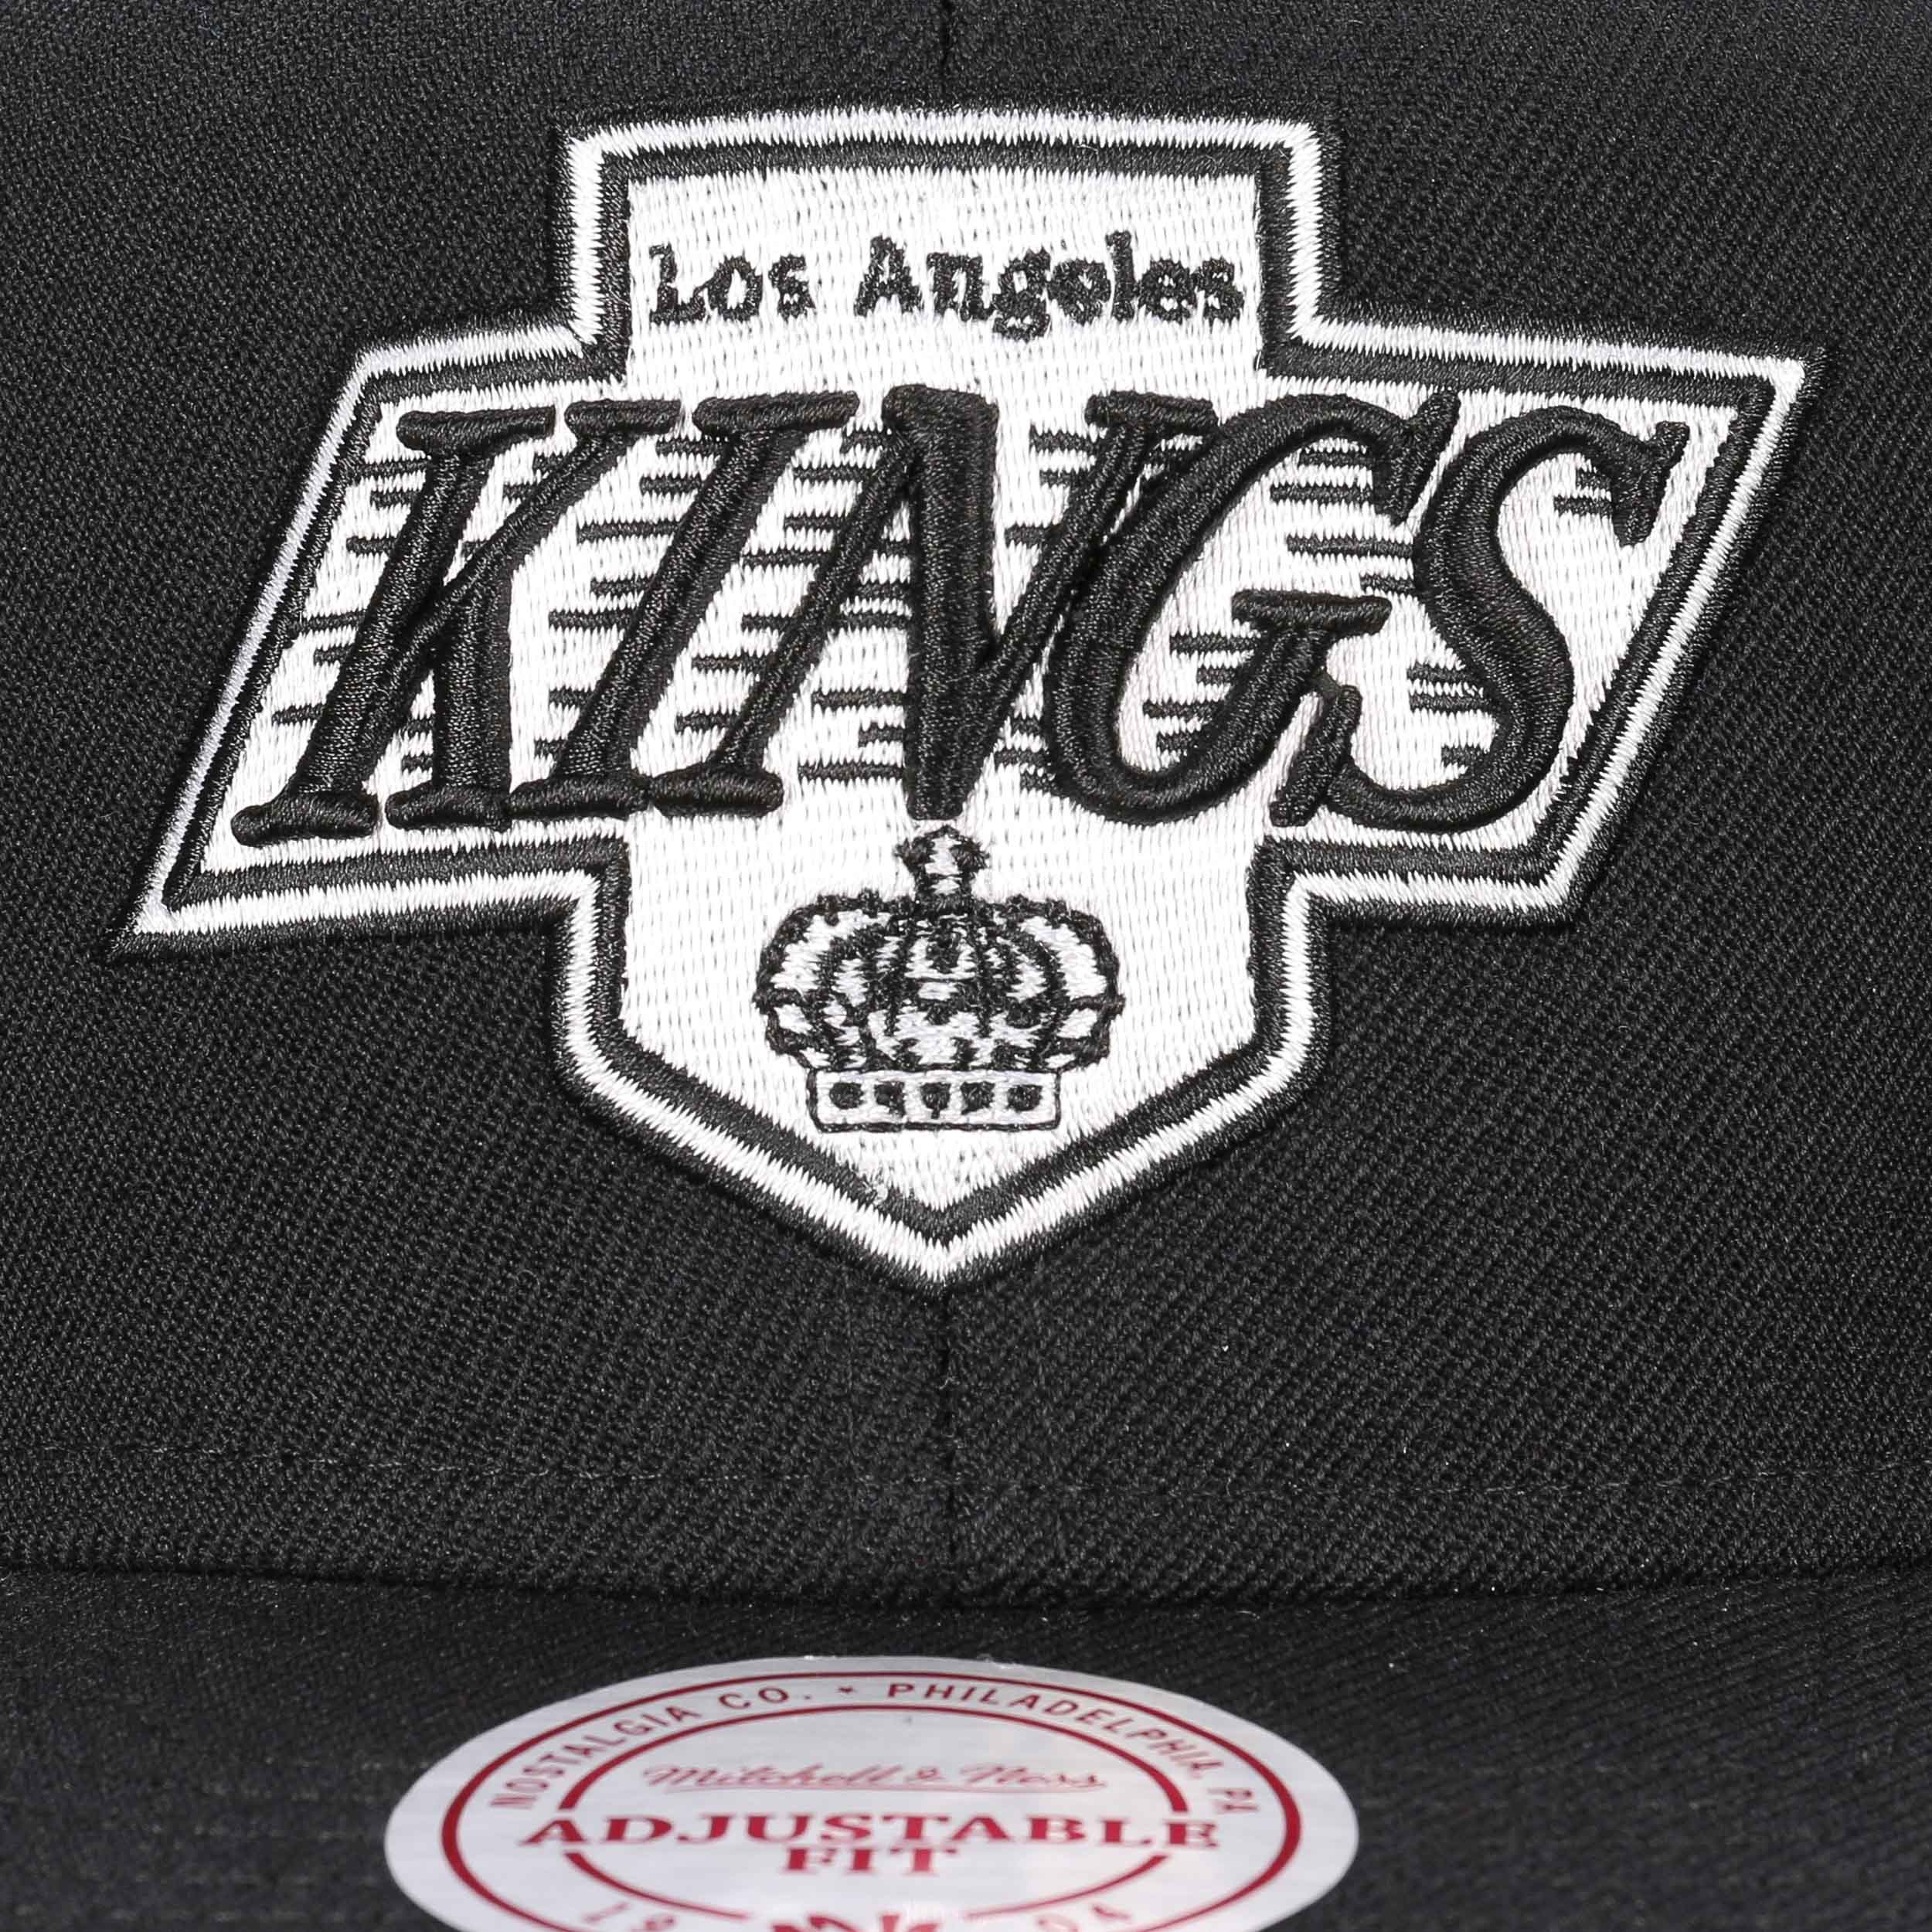 buy online 8a9ae 96f66 La kings online store : Peninsula inn and spa